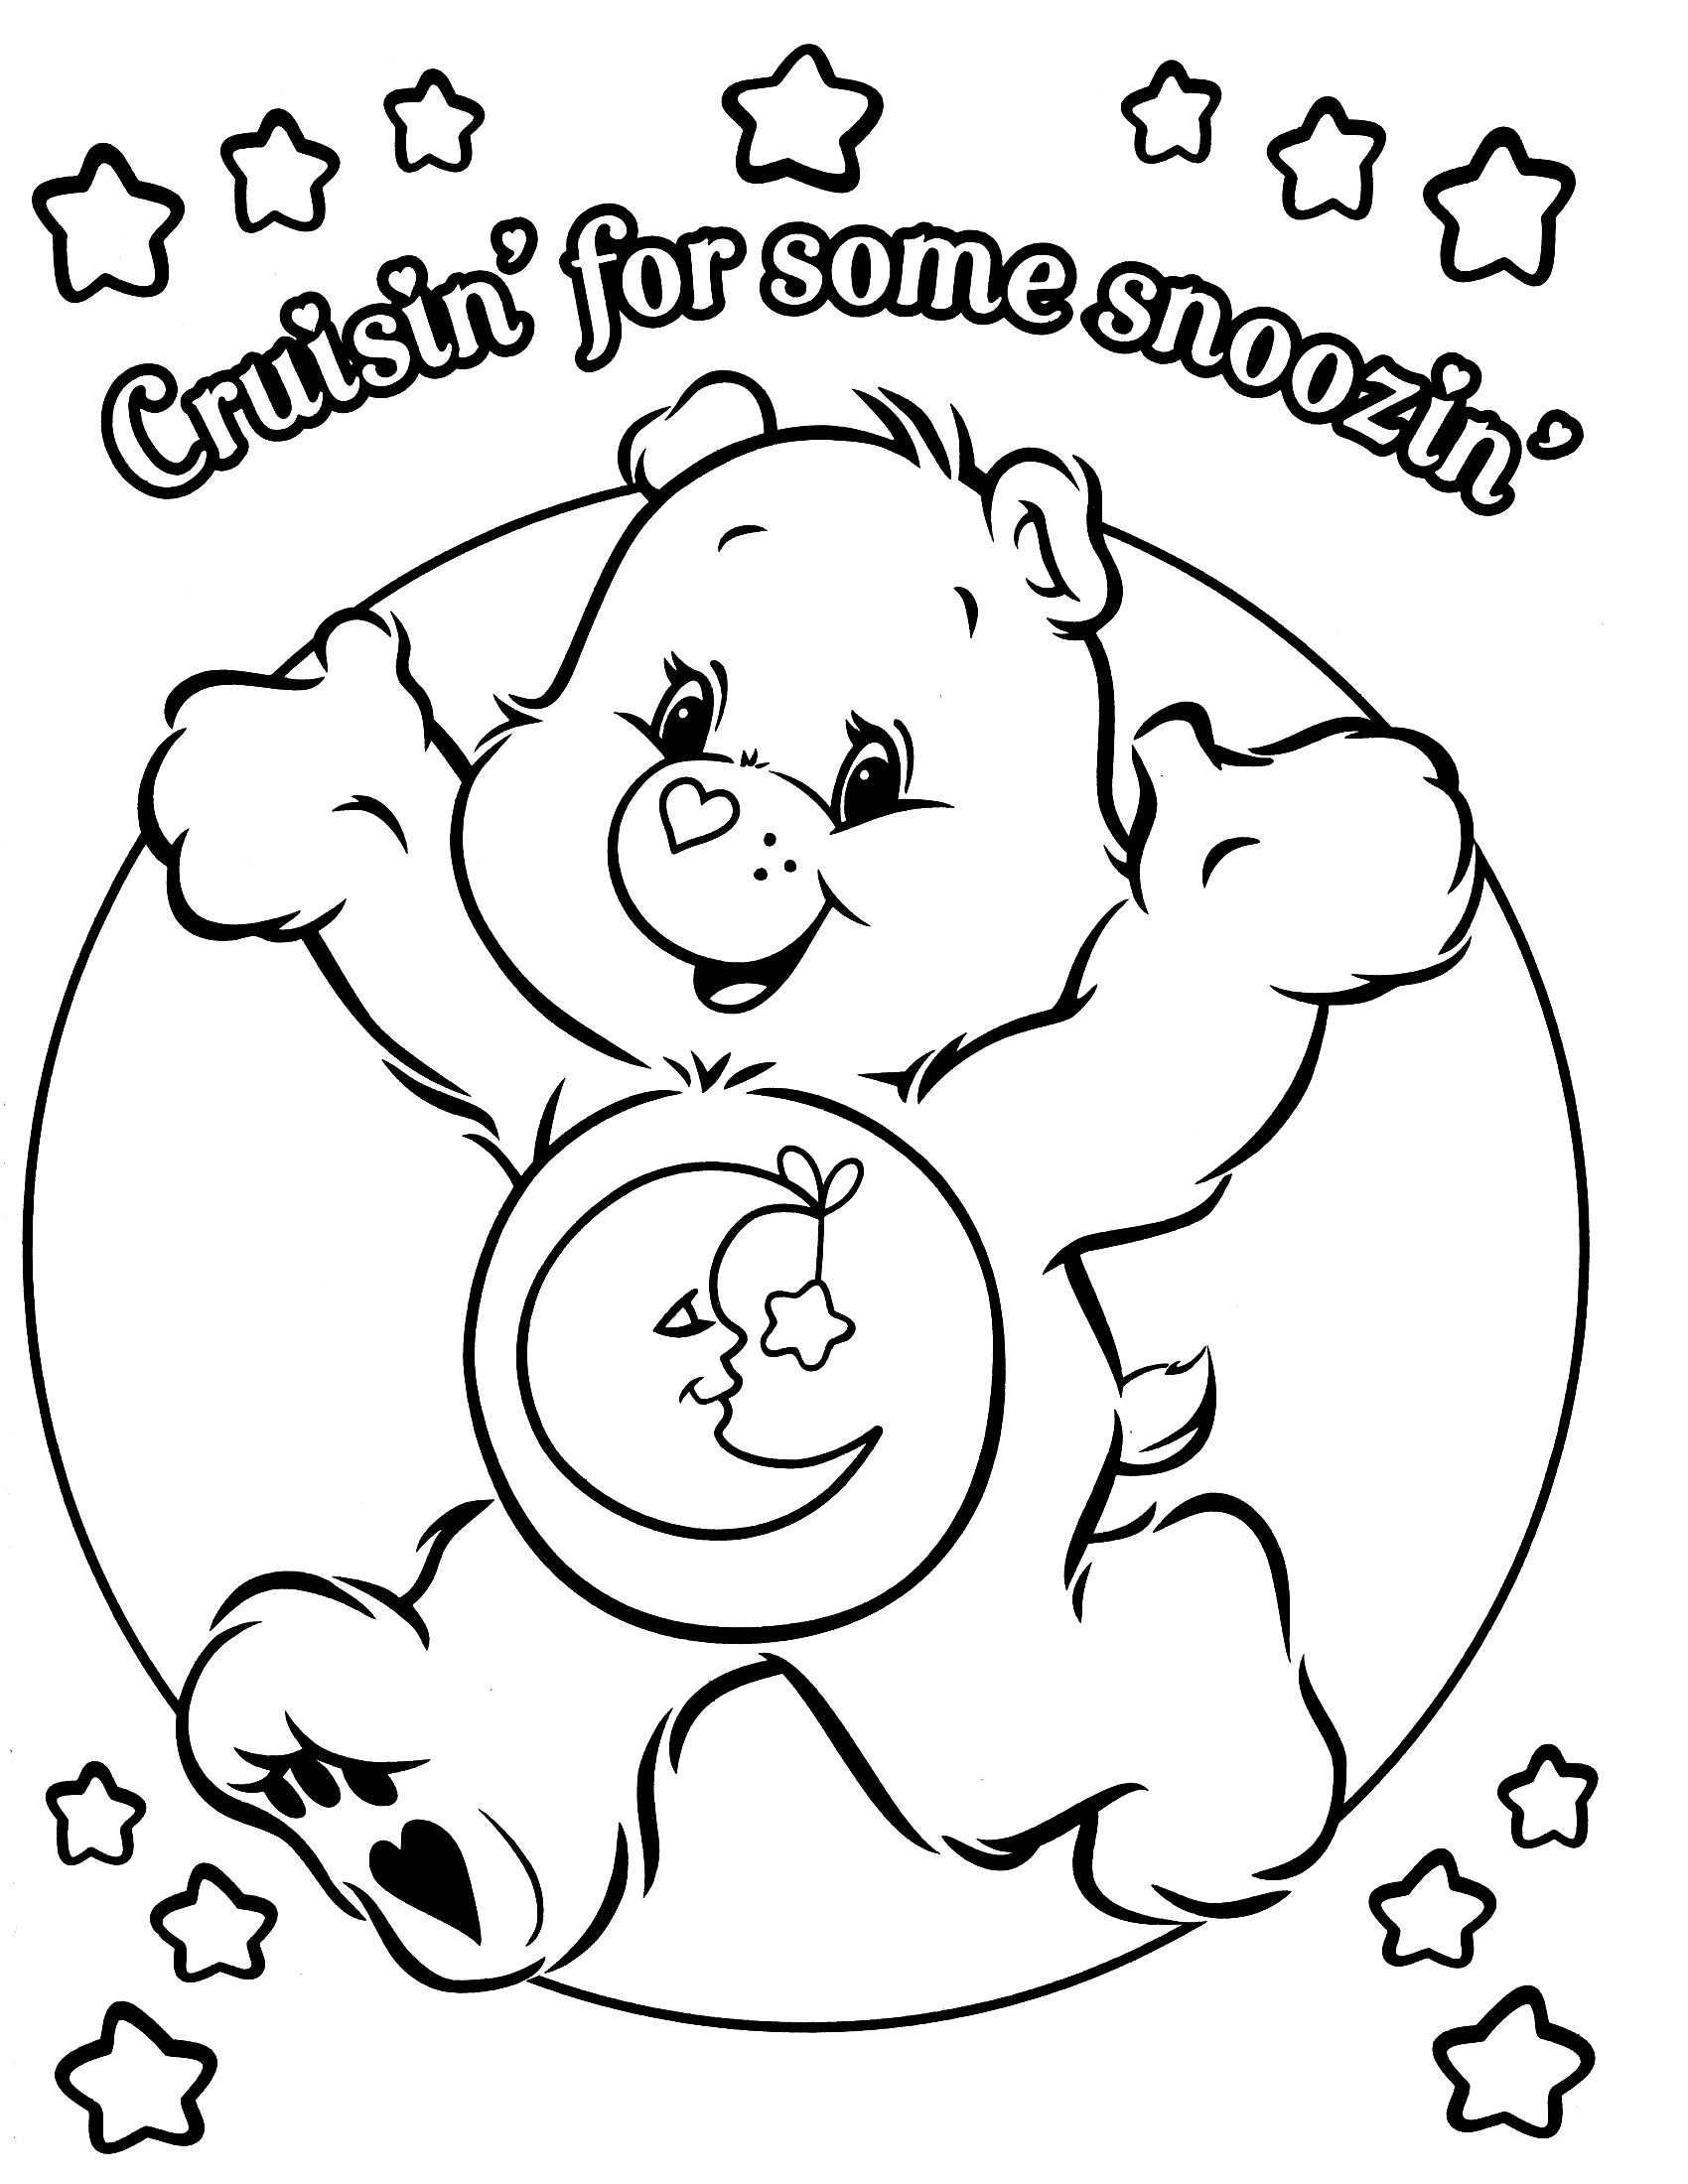 coloring pages for care bares - photo#28